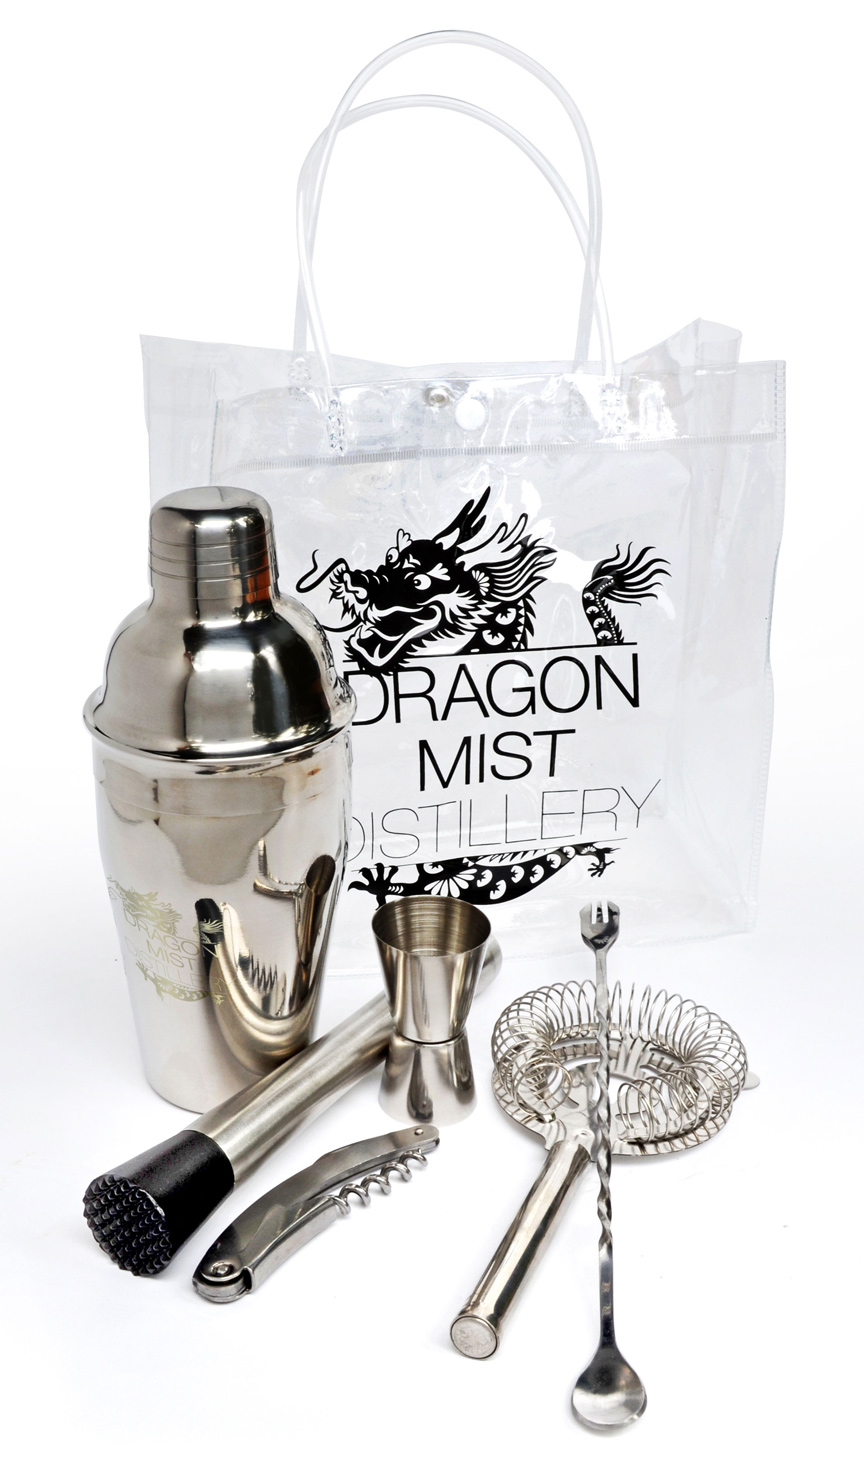 High quality cocktail kit from Dragon Mist Distillery